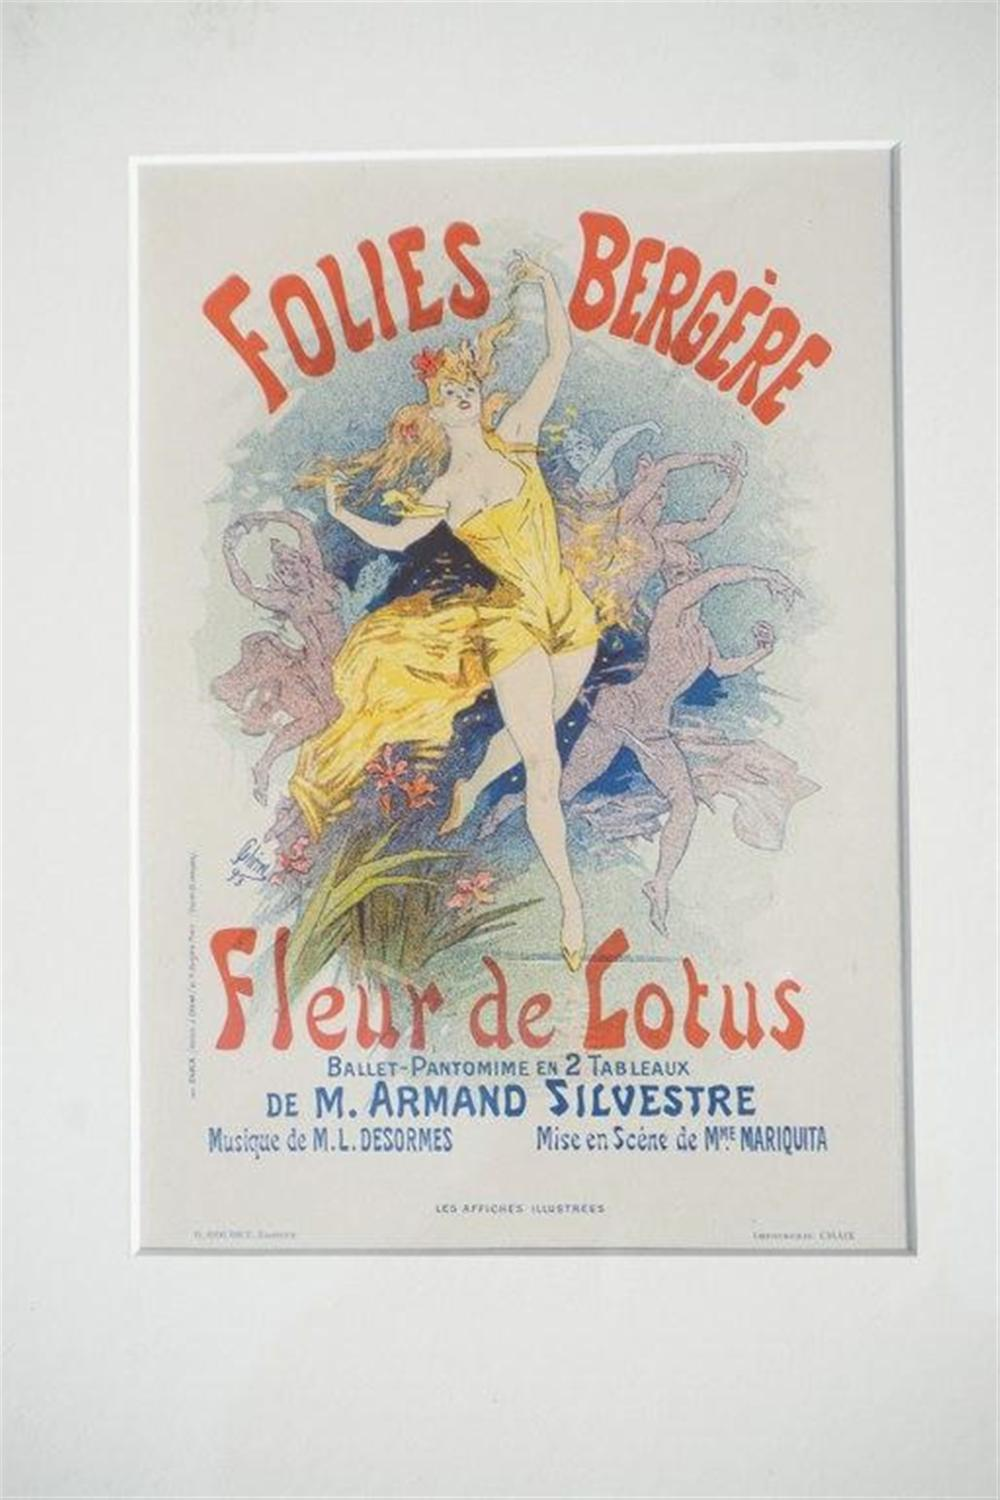 "1896 CHERET FOLIES BERGERE STONE LITHO POSTER, SHEET SIZE 8 3/4"" X 12 1/4"", EXCELLENT CONDITION, SHRINK WRAPPED AND MATTED, FROM RETIRED DEALERS COLLECTION. IMPRIMERIE CHAIX."